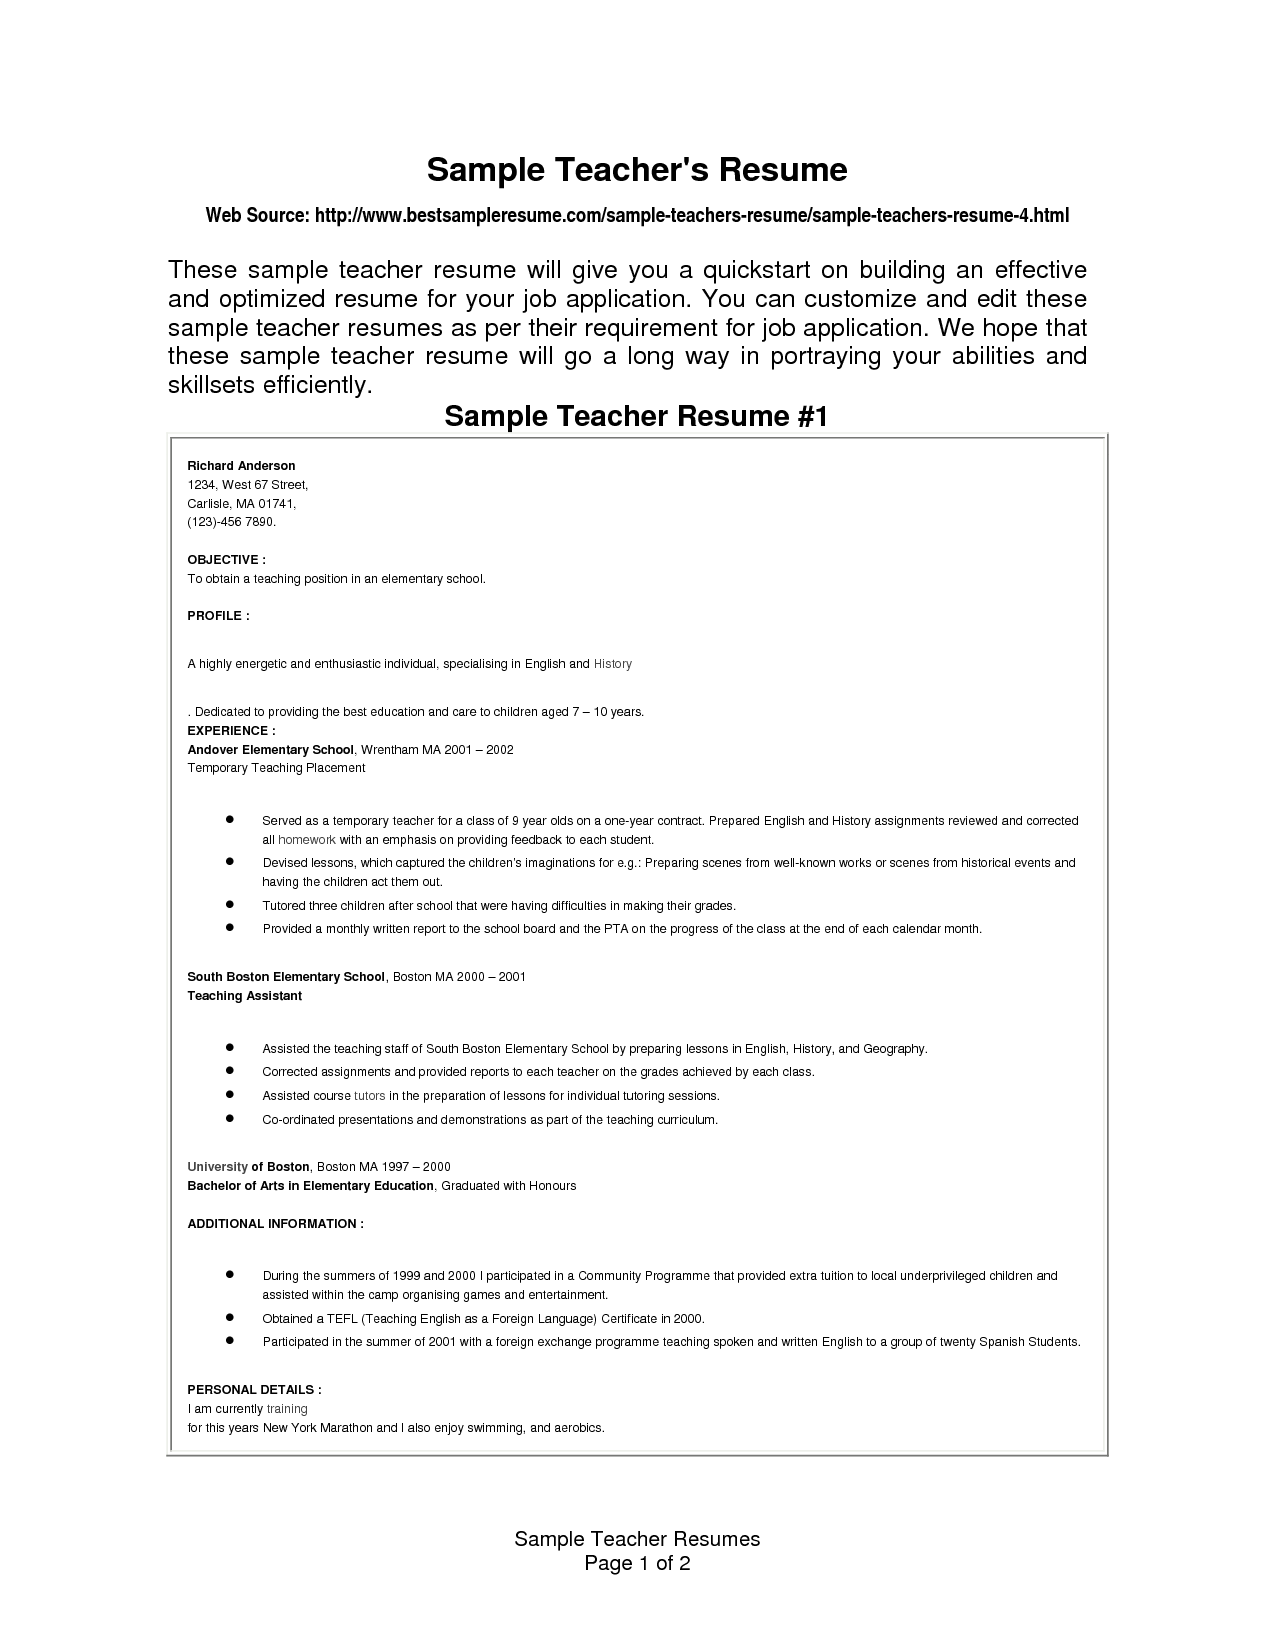 TeachersResumePng   Professional Development